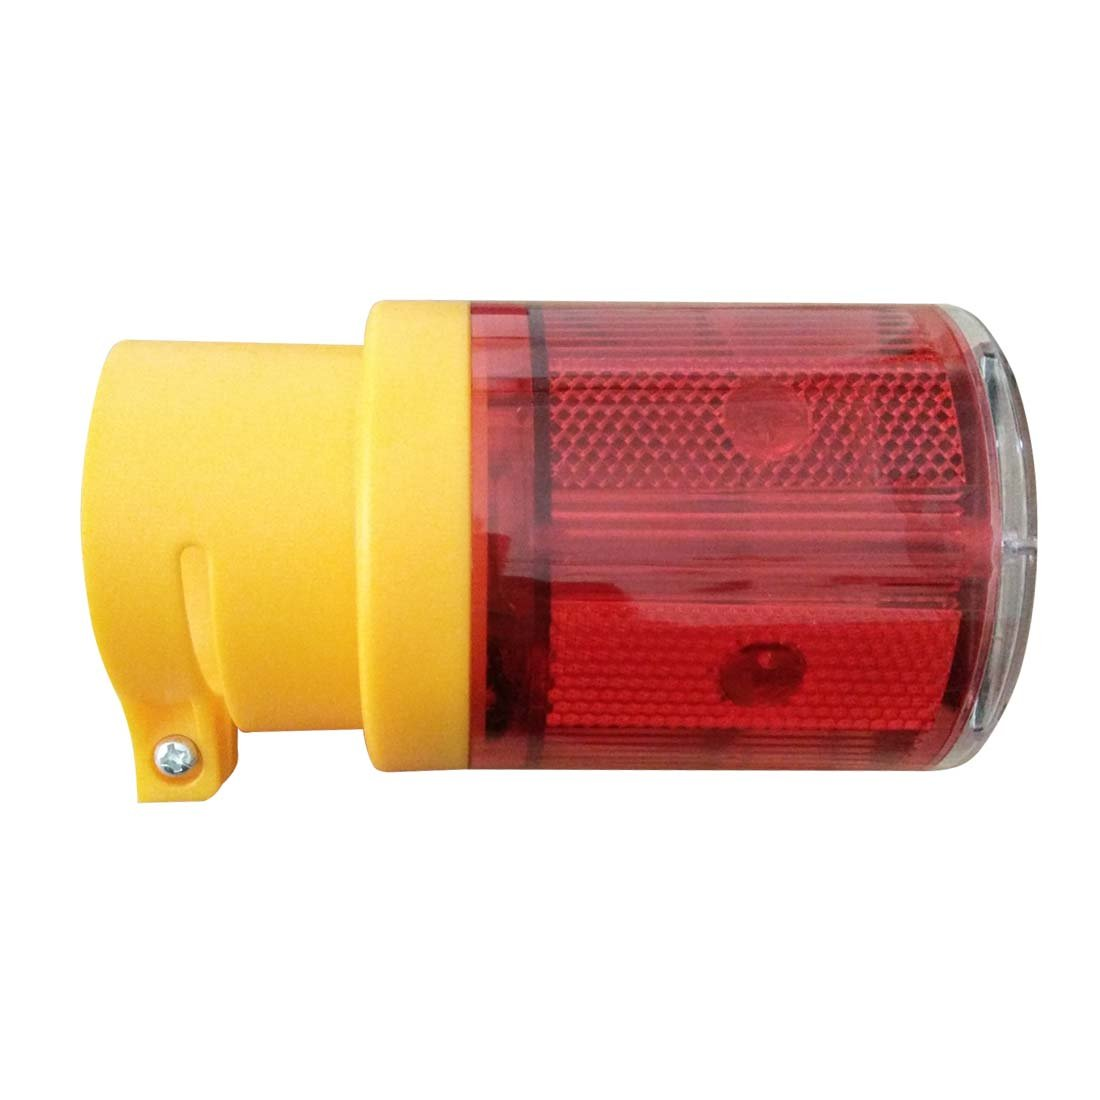 Penfly 0.6w LED Wireless Solar Power Warning Strobe Light Signal Caution Emergency Security Night Lamp for Car Projector Truck Boat Hazard Parking Maintenance Red Color